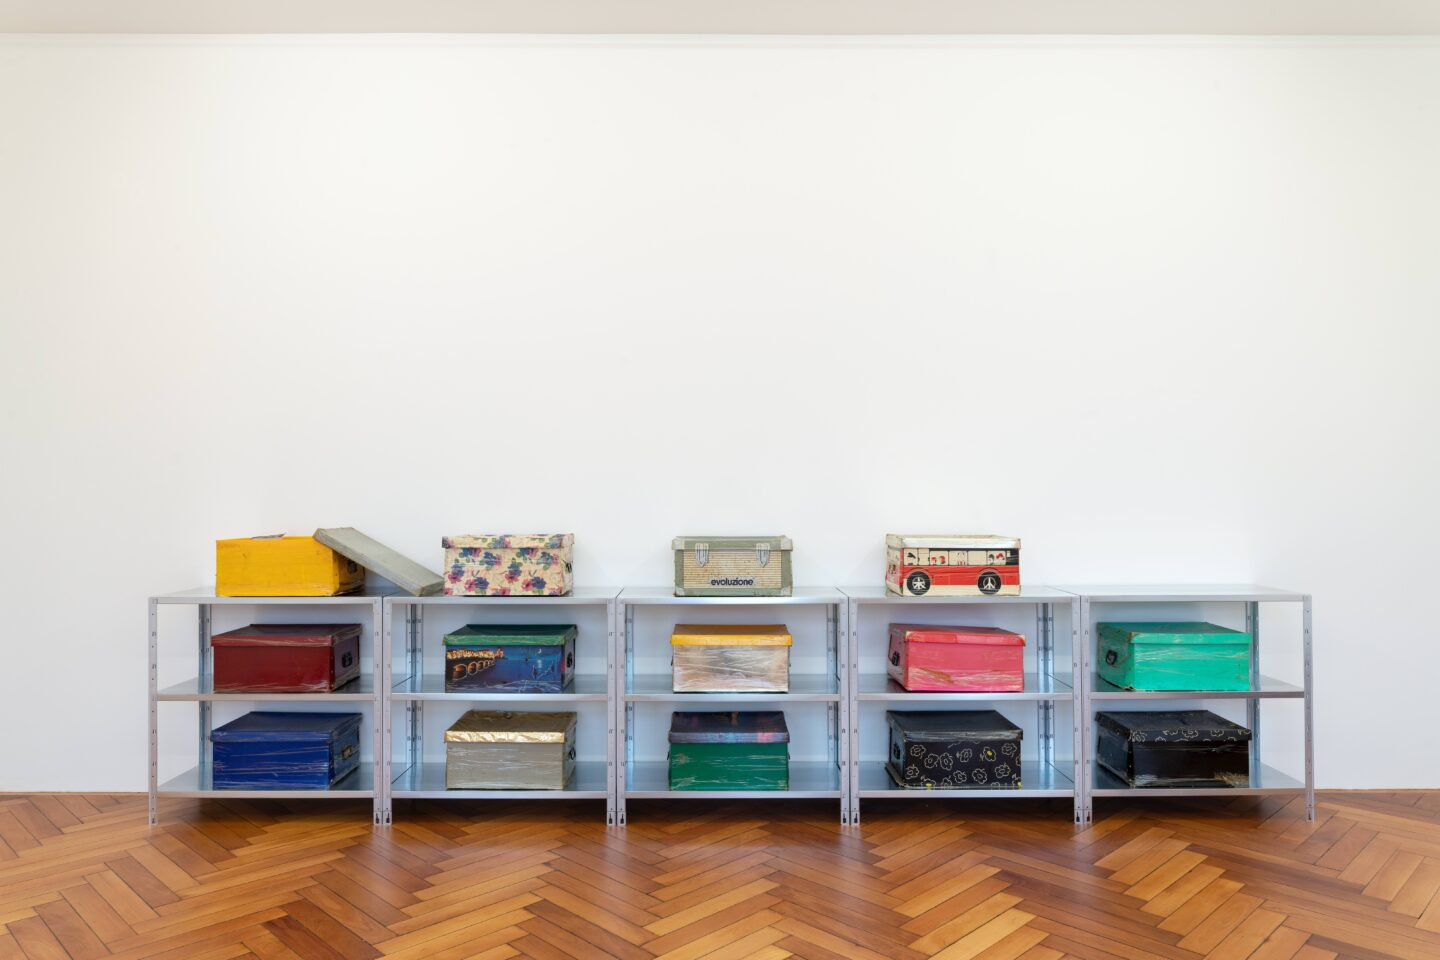 Exhibition View Groupshow «Kasten; view on Adelhyd Van Bender, untitled (1-14), 1999-2014» at Stadtgalerie, Bern, 2020 / Photo: CE / Courtesy: the artist and Stadtgalerie, Bern